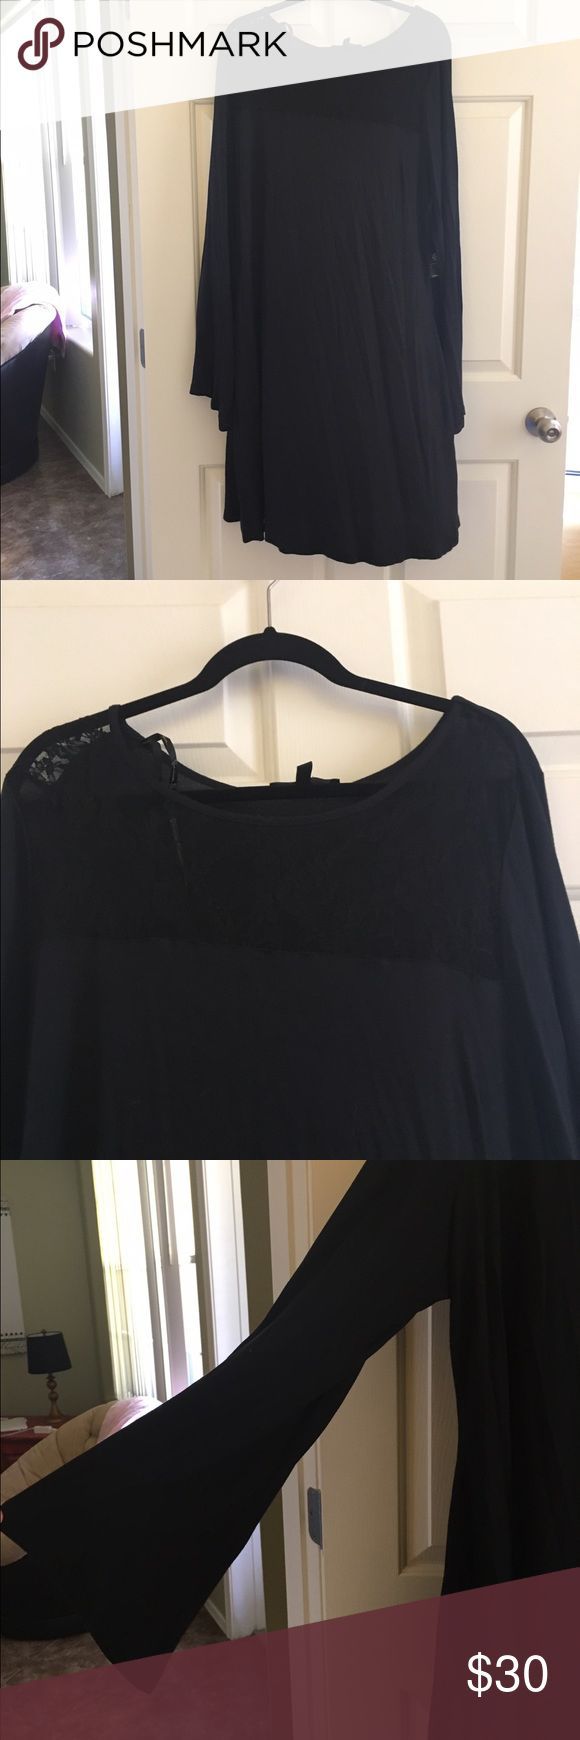 """Jessica Simpson Shift Dress 3X Jessica Simpson  Plus size 3X  Part of her """"sportswear"""" collection. Soft knit shift dress/tunic with lace chest detail. Long sleeves.  Super cute! New with tags      Lowballs will be ignored. Items are priced to sell with very little wiggle room. Bundle & save!! Jessica Simpson Dresses"""